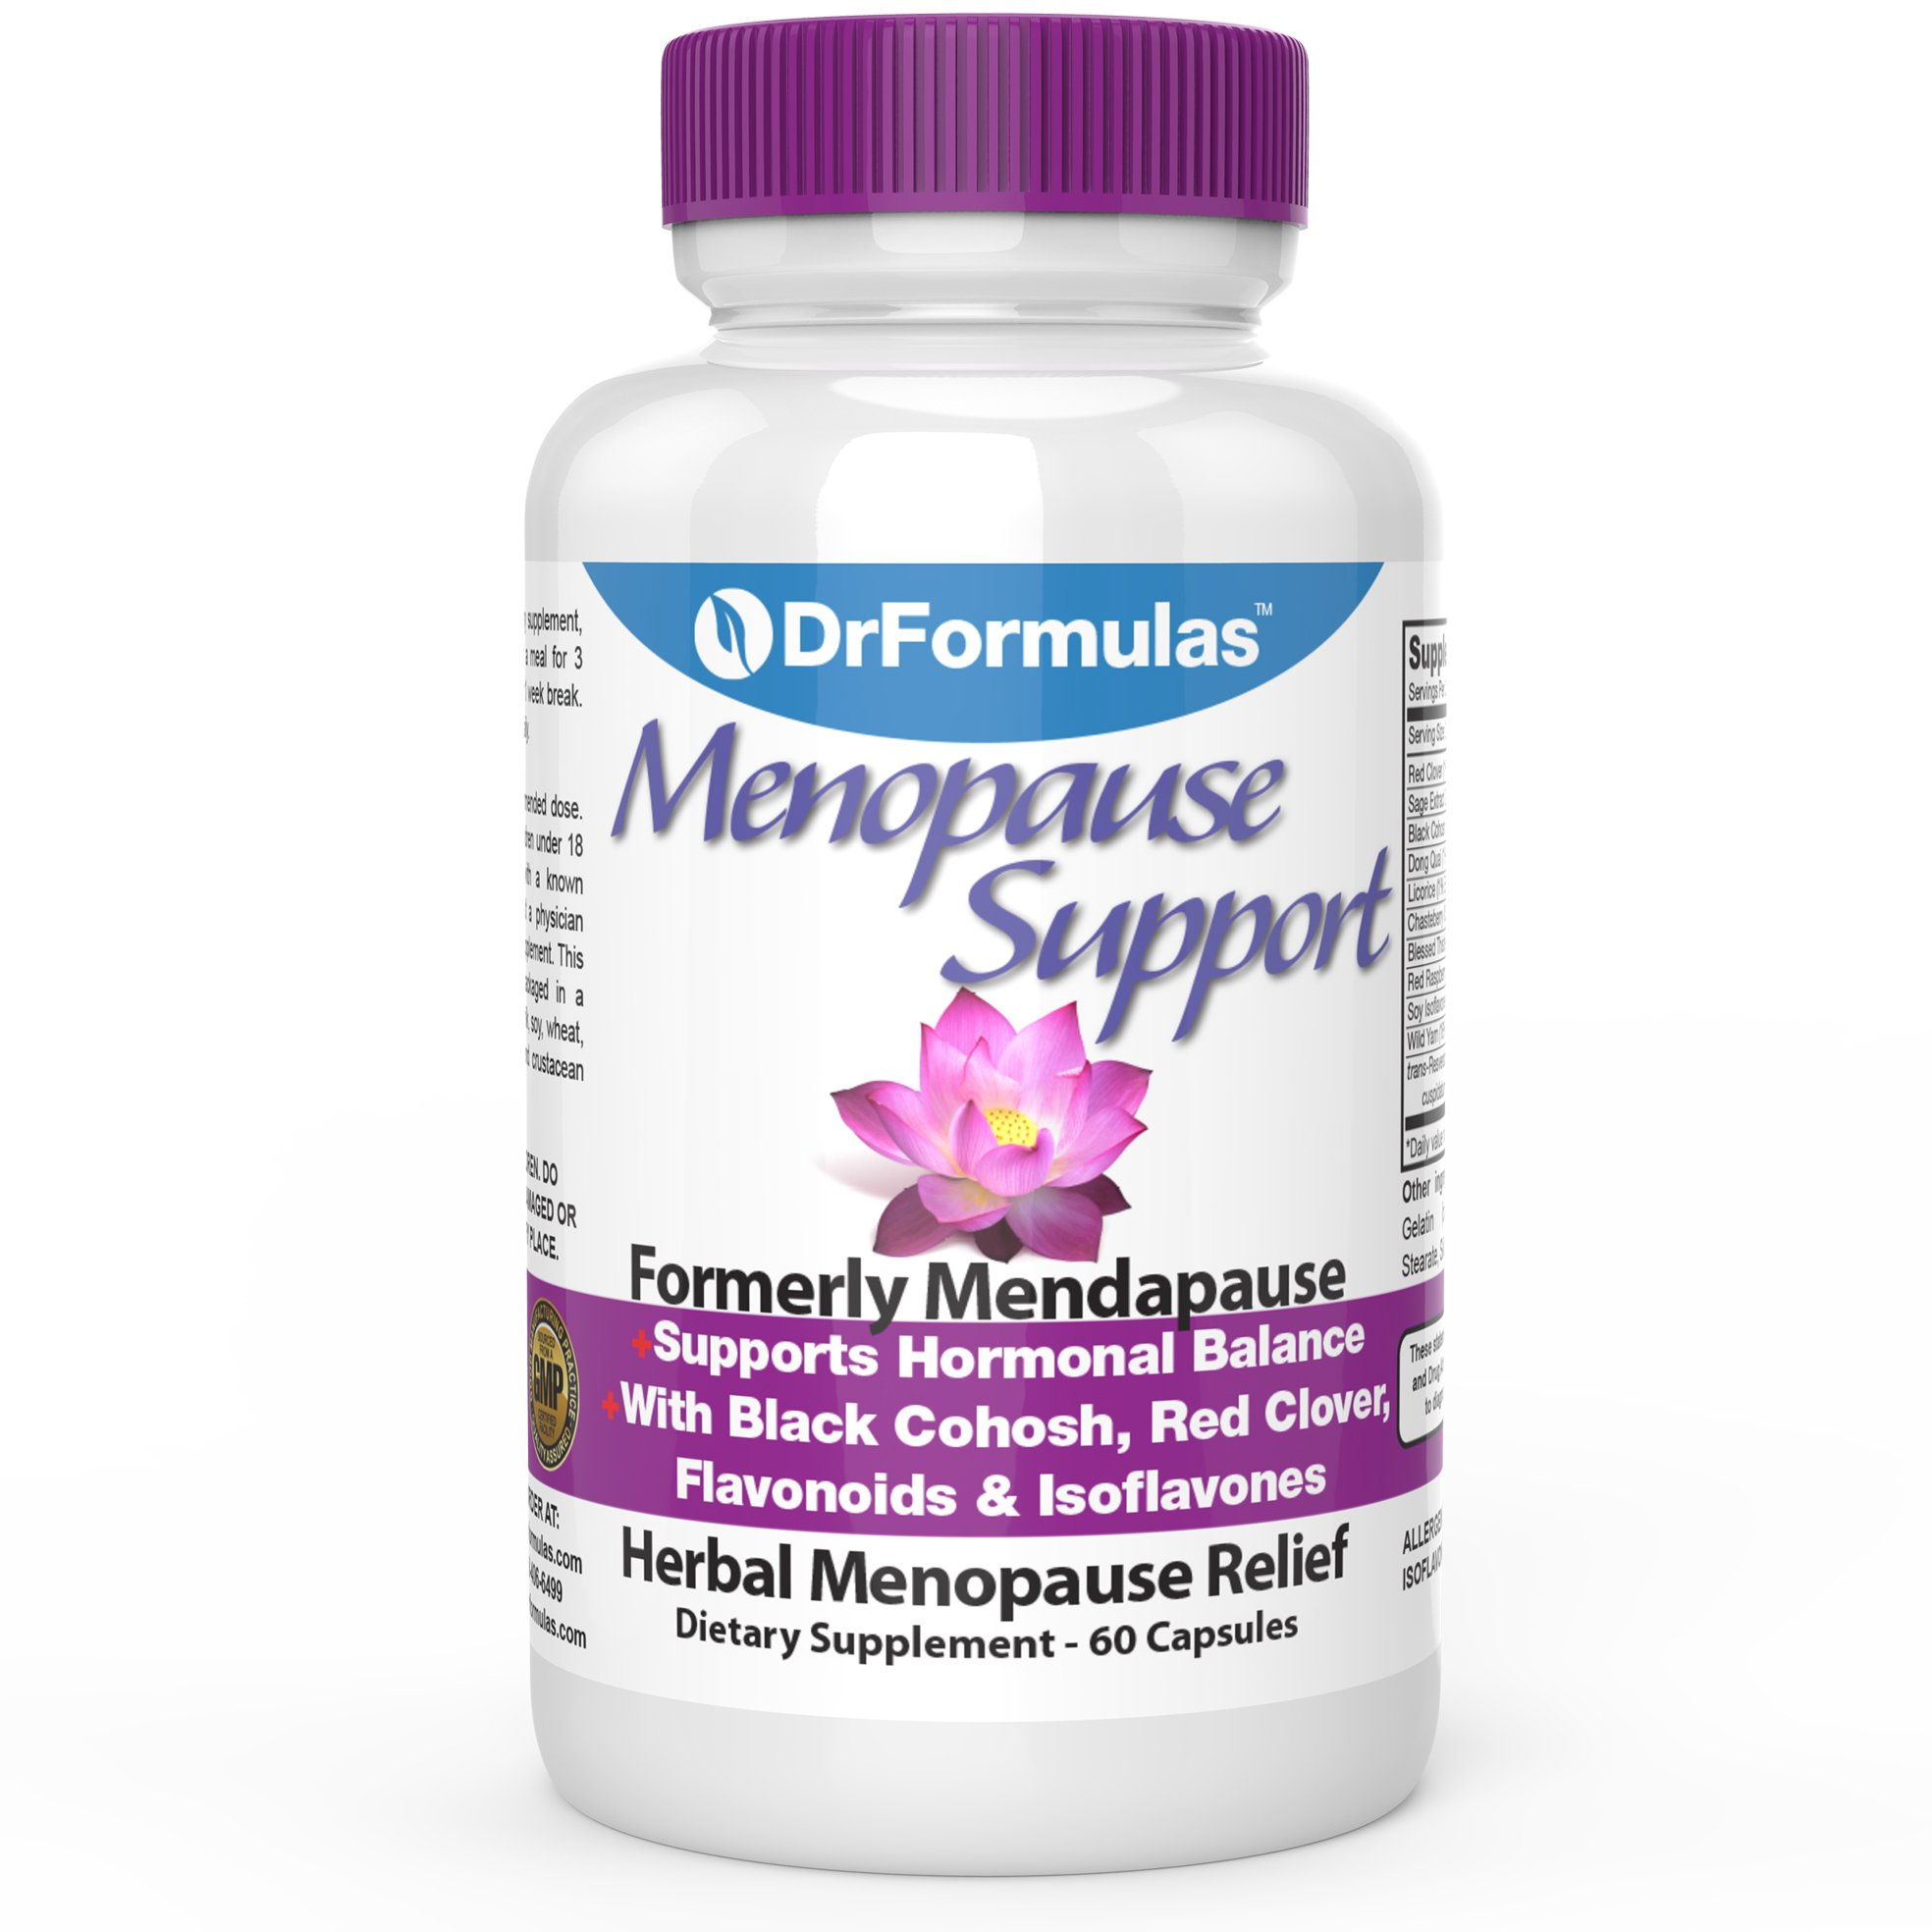 DrFormulas Menopause Supplements for Relief, Support and Weight Loss | Black Cohosh Extract for Hot Flashes, Vitamins, Dong Quai, 60 Count Complex by DrFormulas